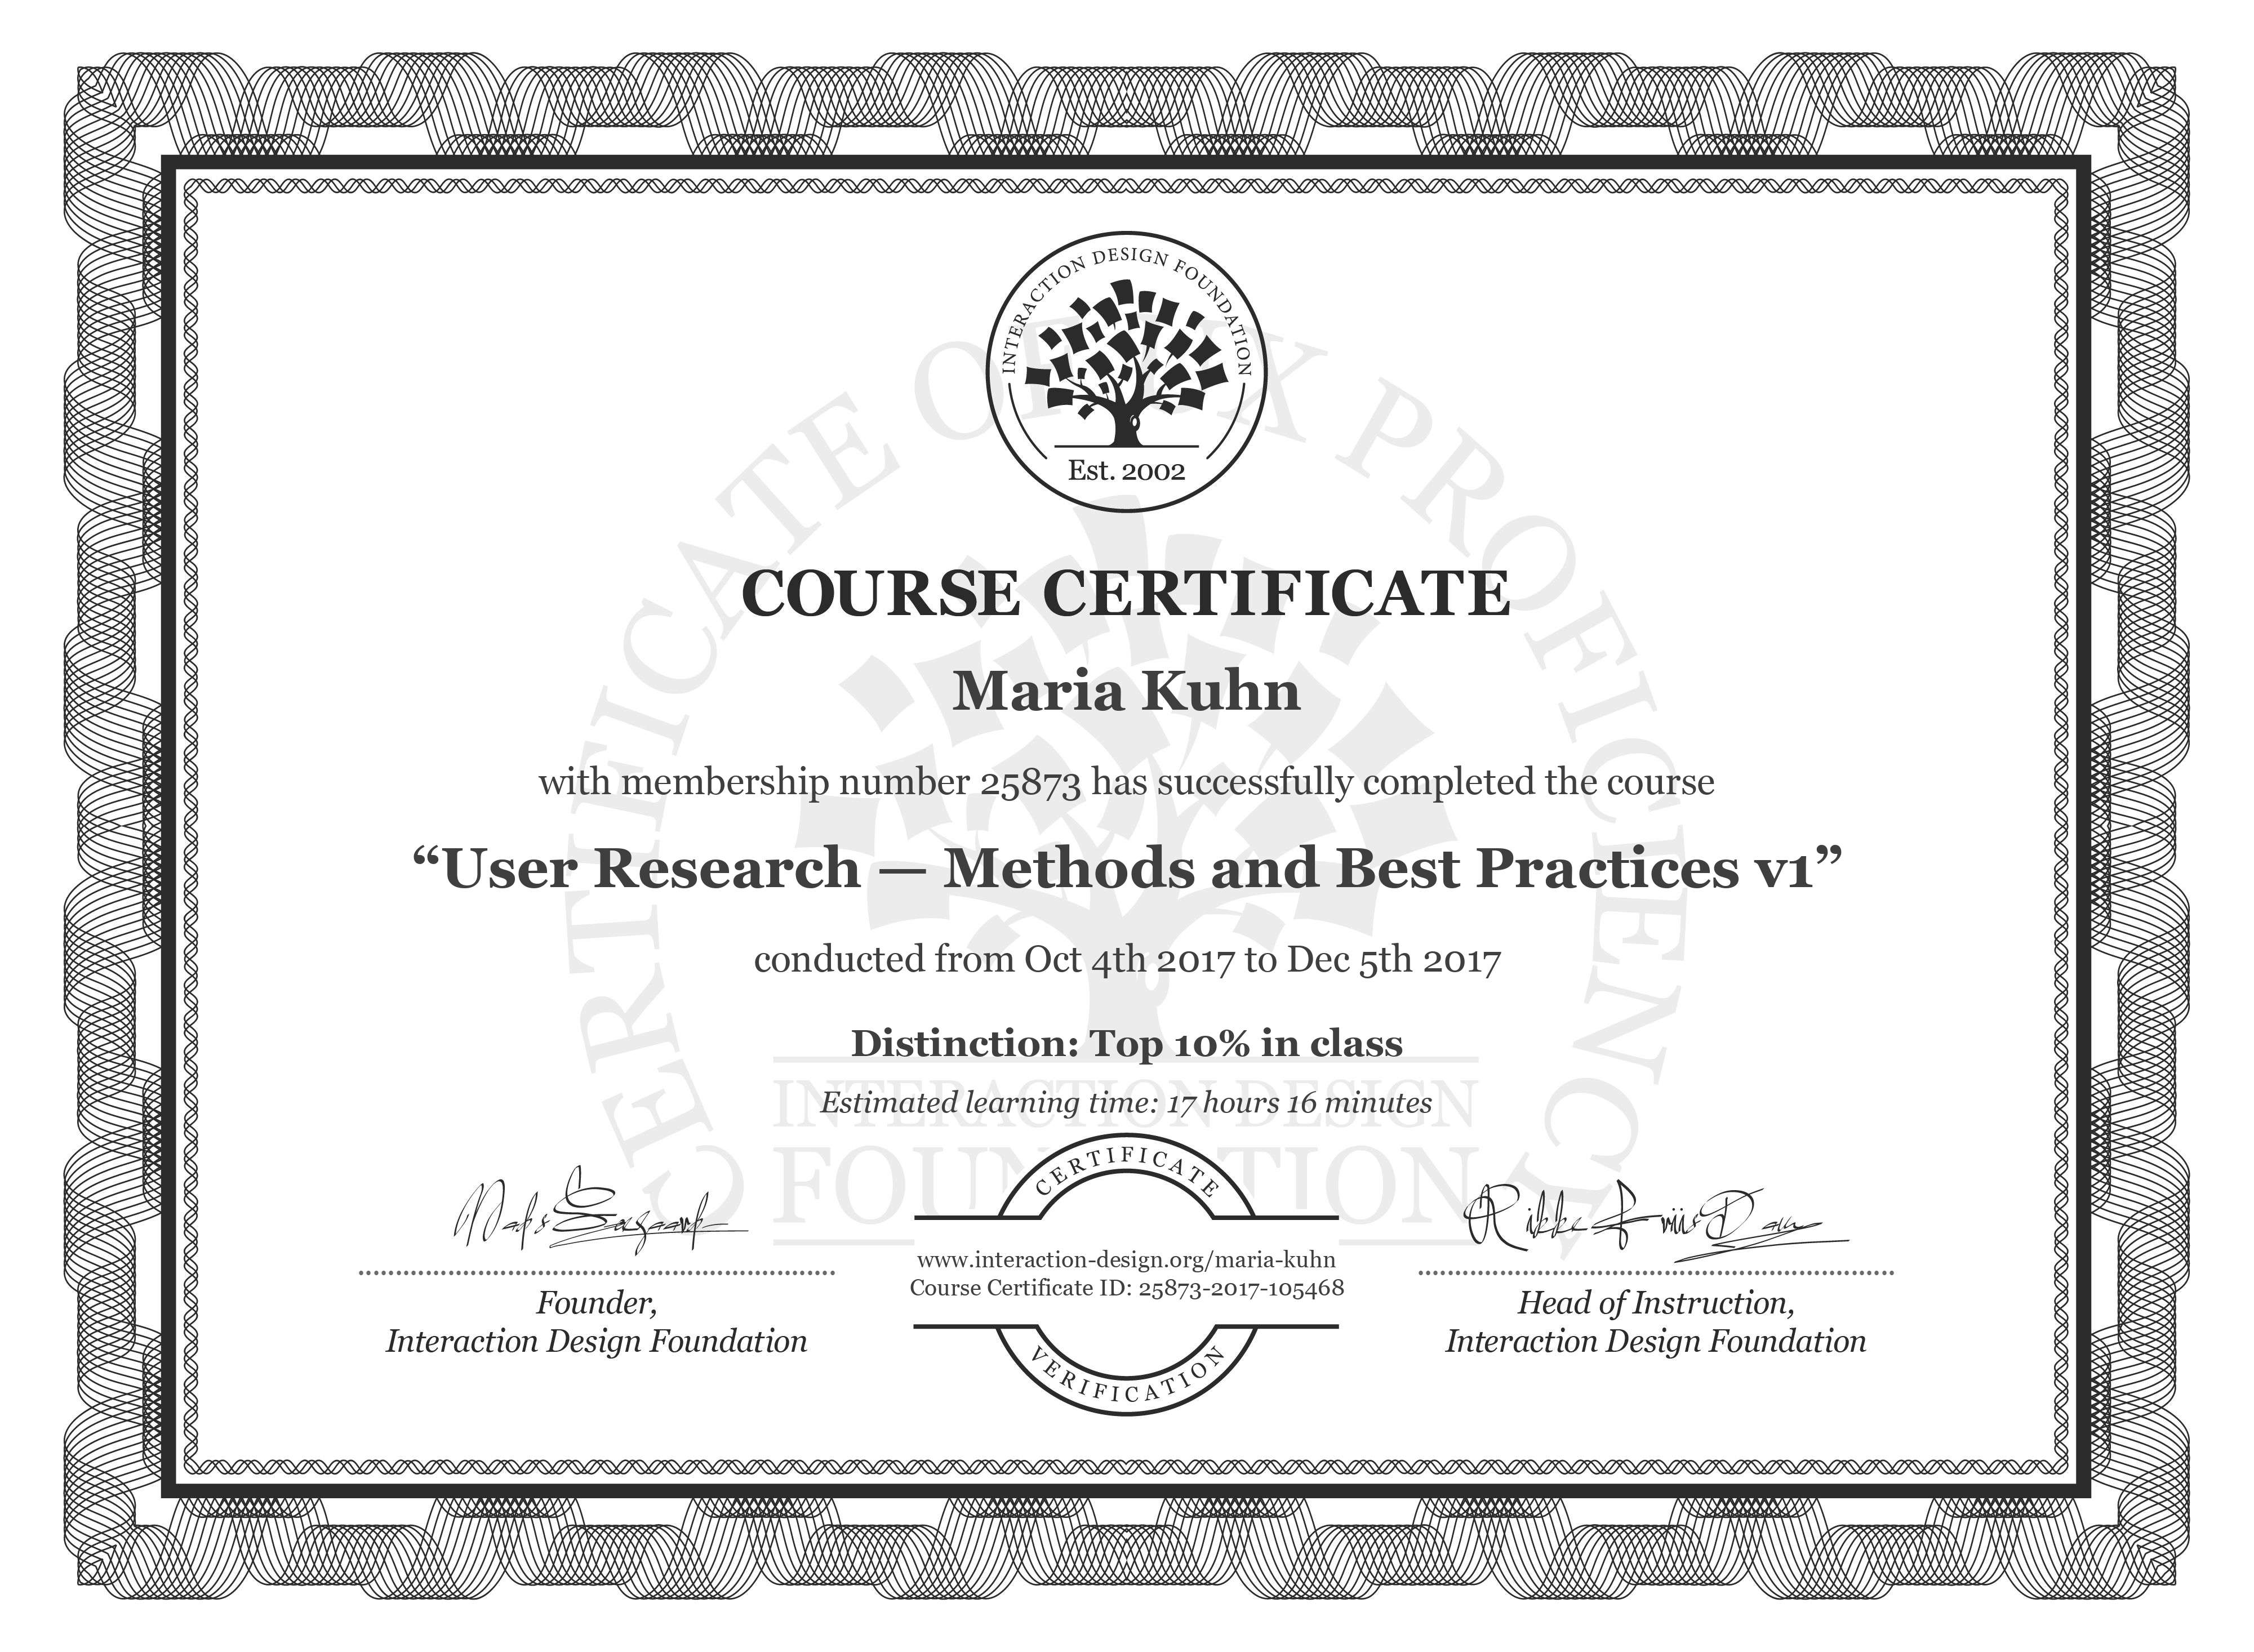 Maria Kuhn's Course Certificate: User Research — Methods and Best Practices